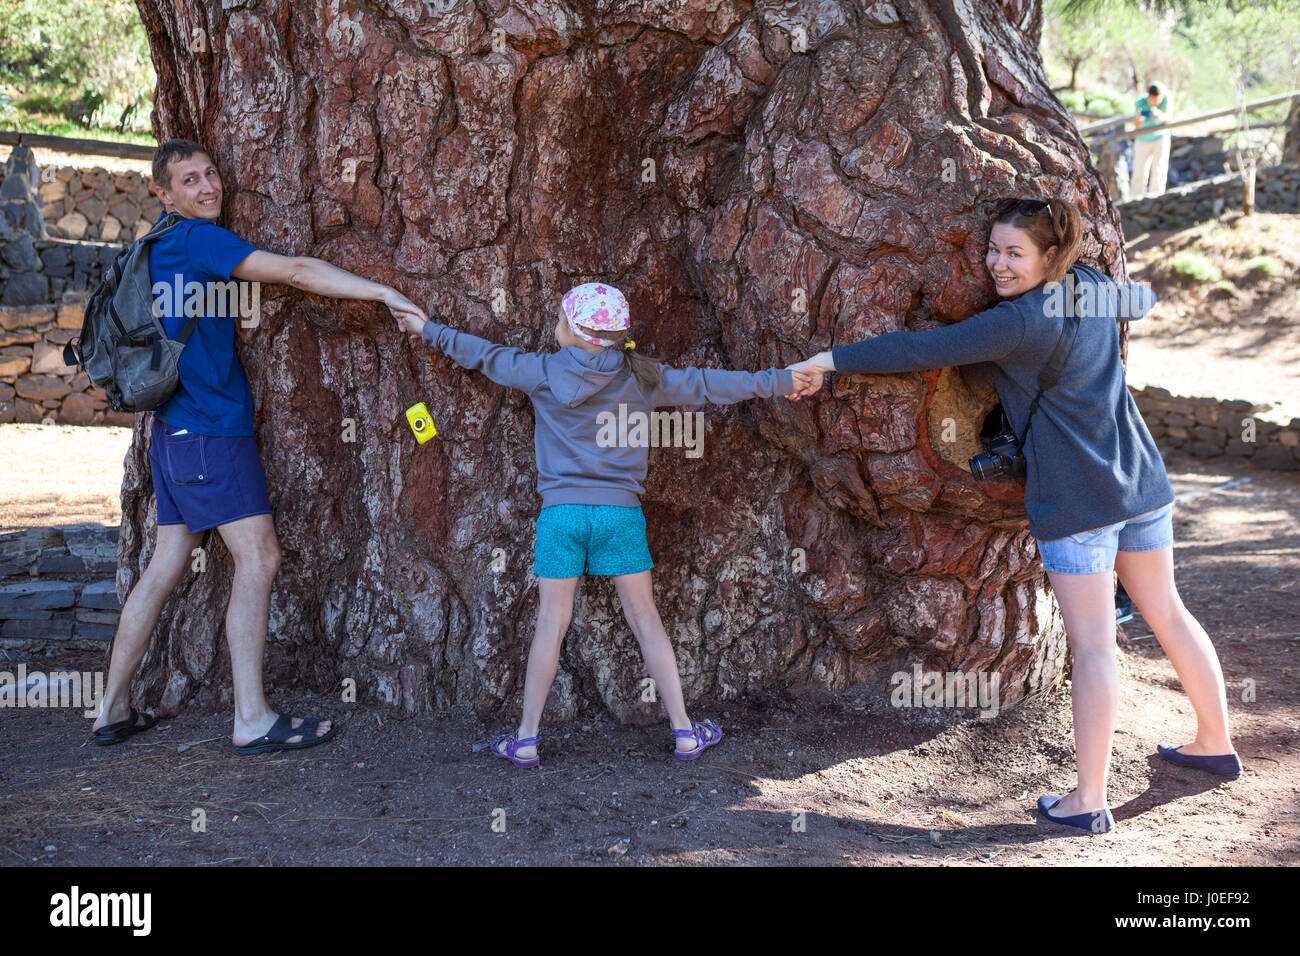 Dad, mom and daughter embracing all together with hands the giant pine in Vilaflor. Tenerife, Canary Islands, Spain Stock Photo